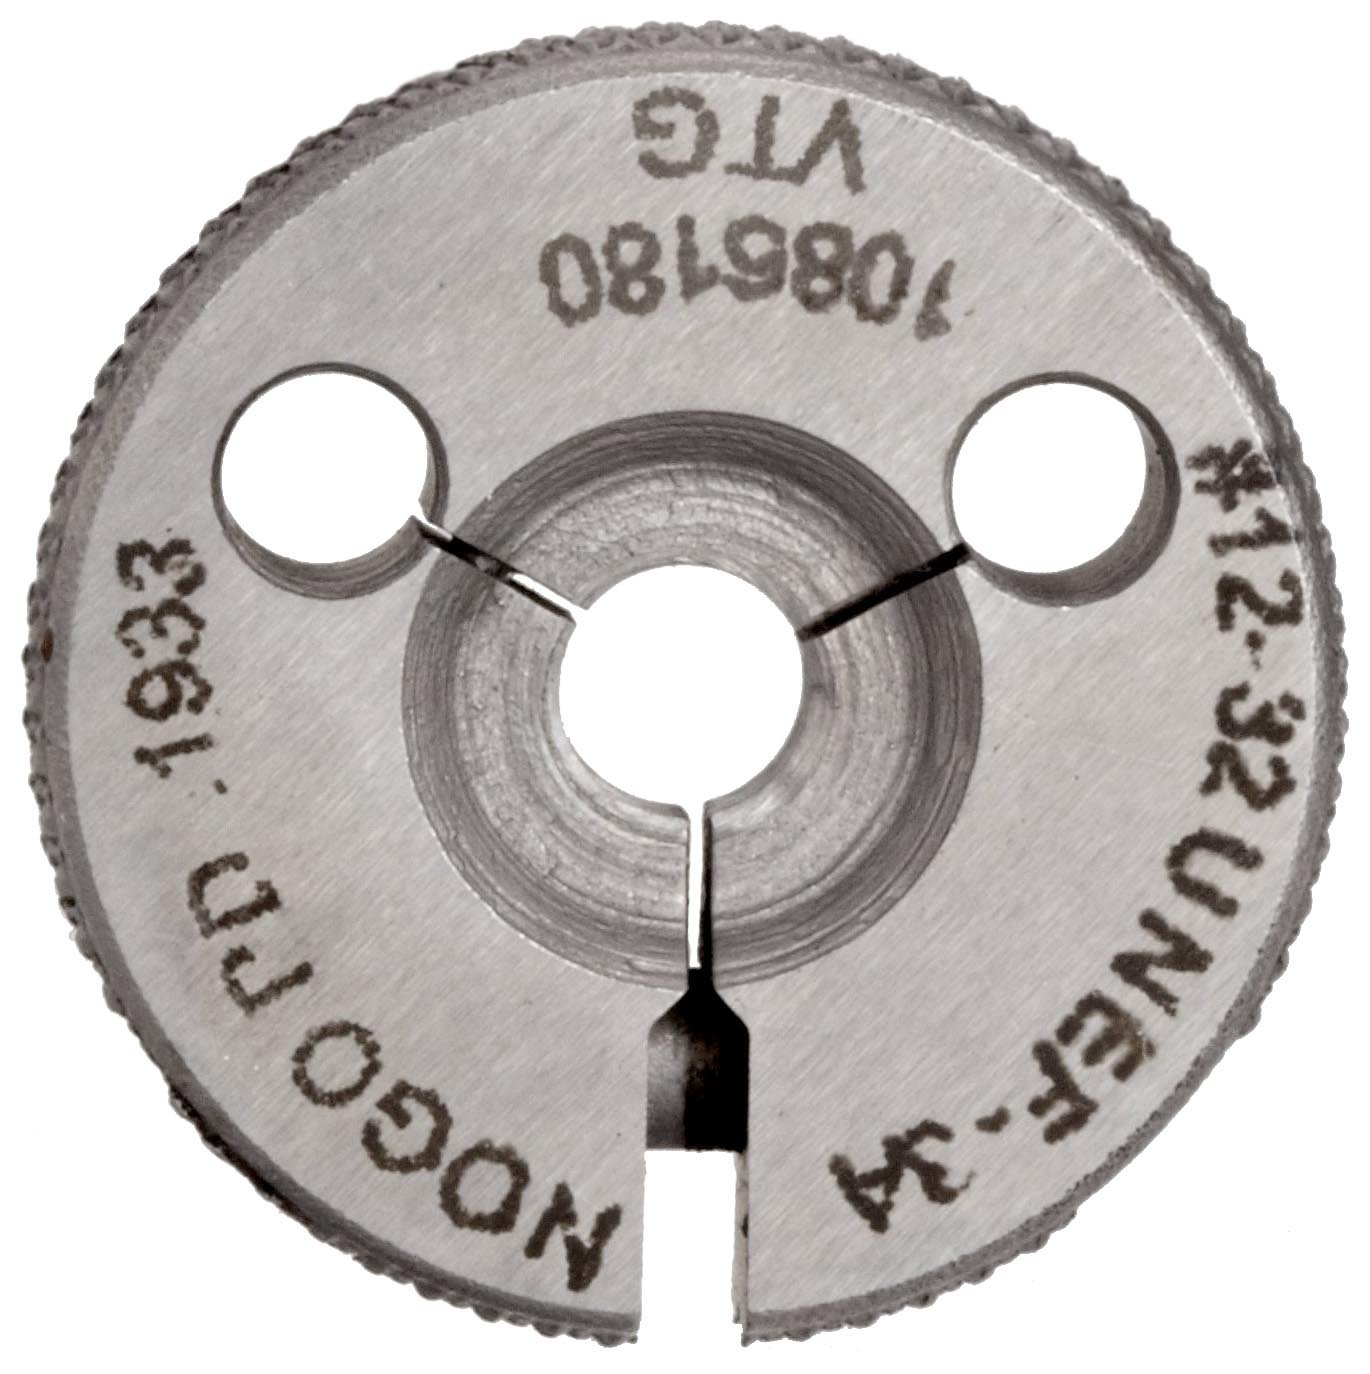 Vermont Gage 361153030 3//4-16 UNF 2A No-Go Ring Gage